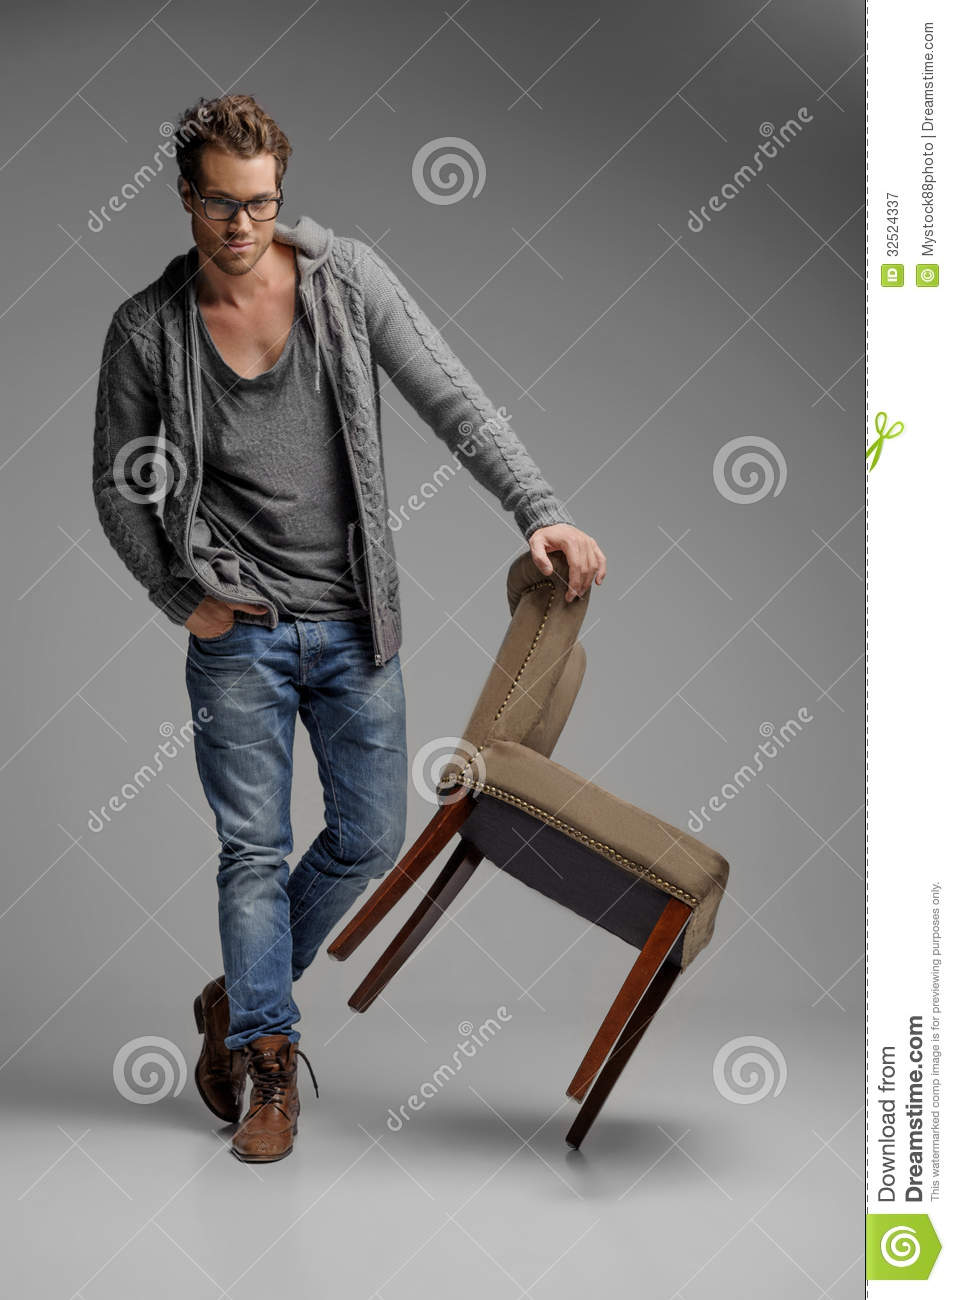 Leaning Chair